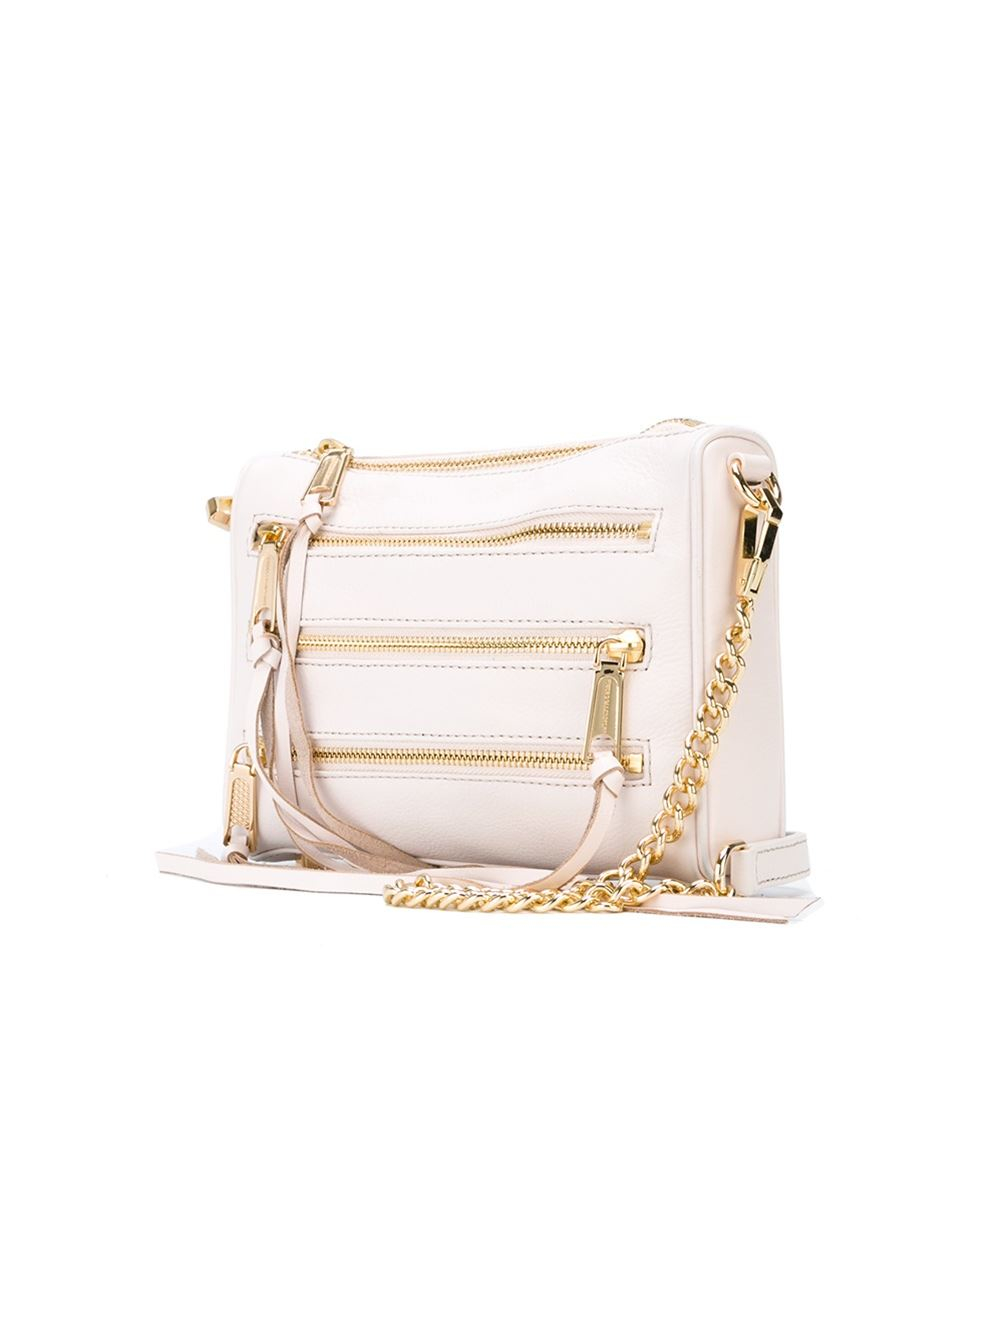 Rebecca Minkoff Leather Multiple Zip Crossbody Bag in Natural